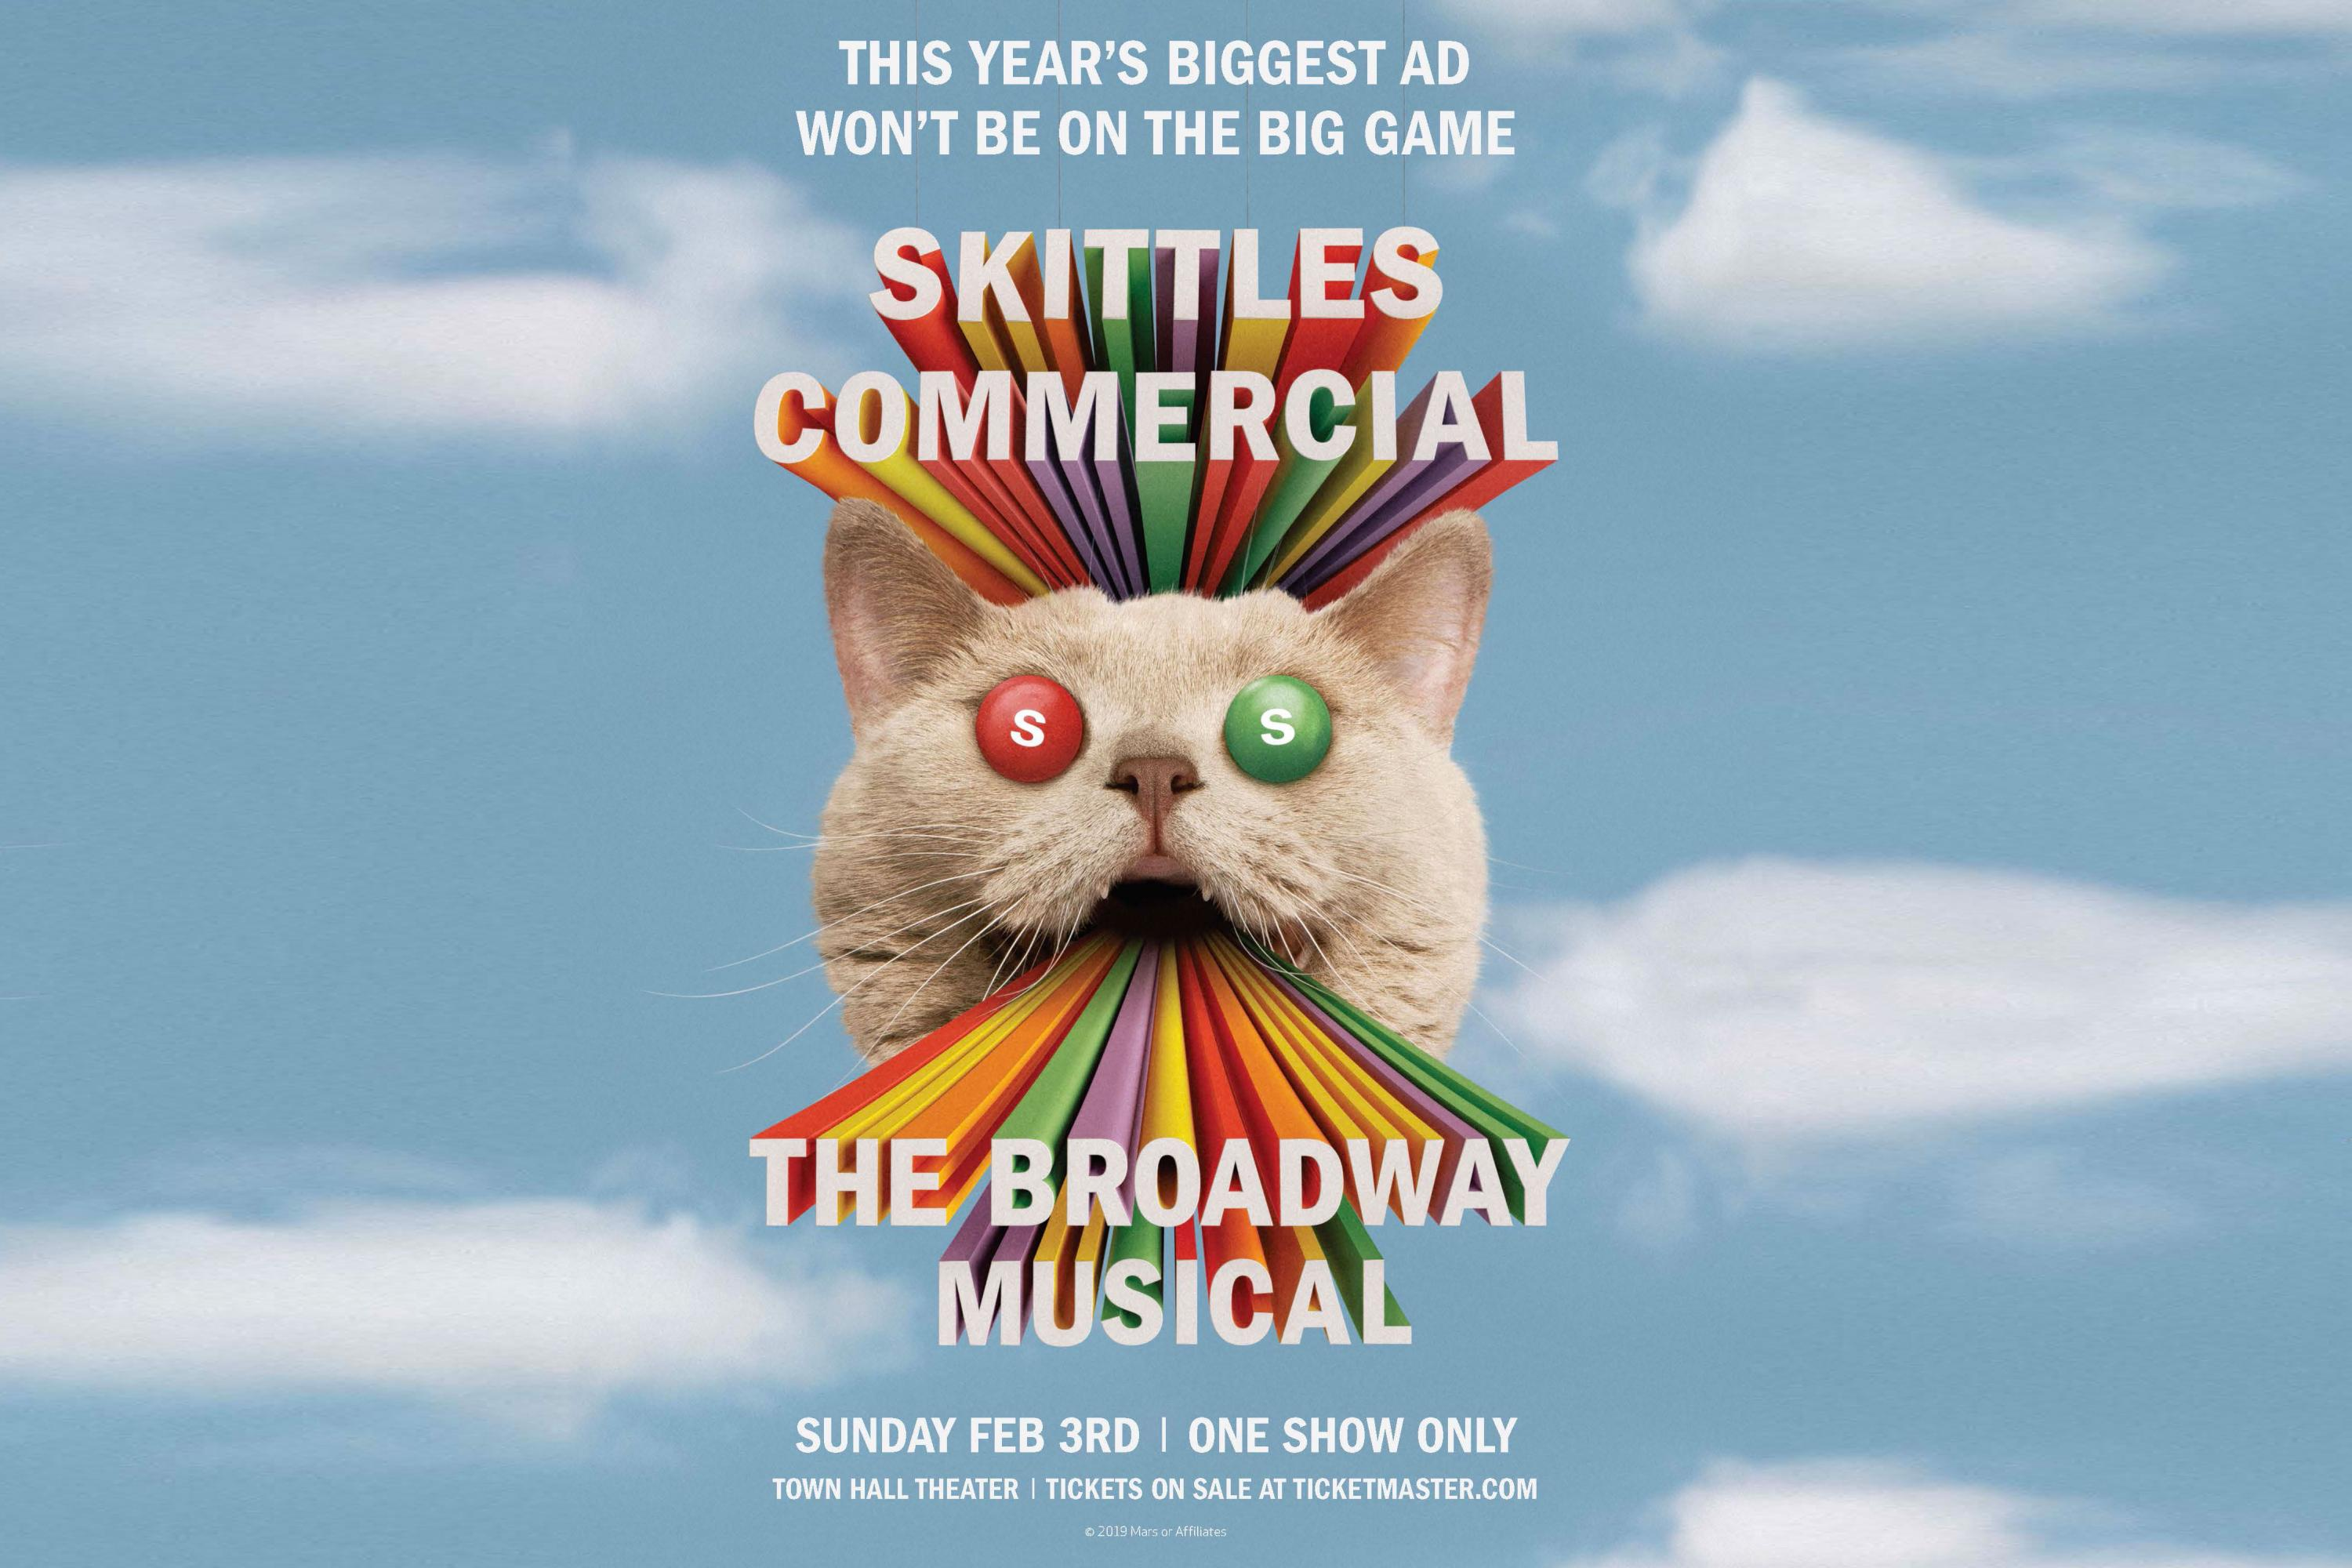 Skittles is planning another non-game stunt for Super Bowl